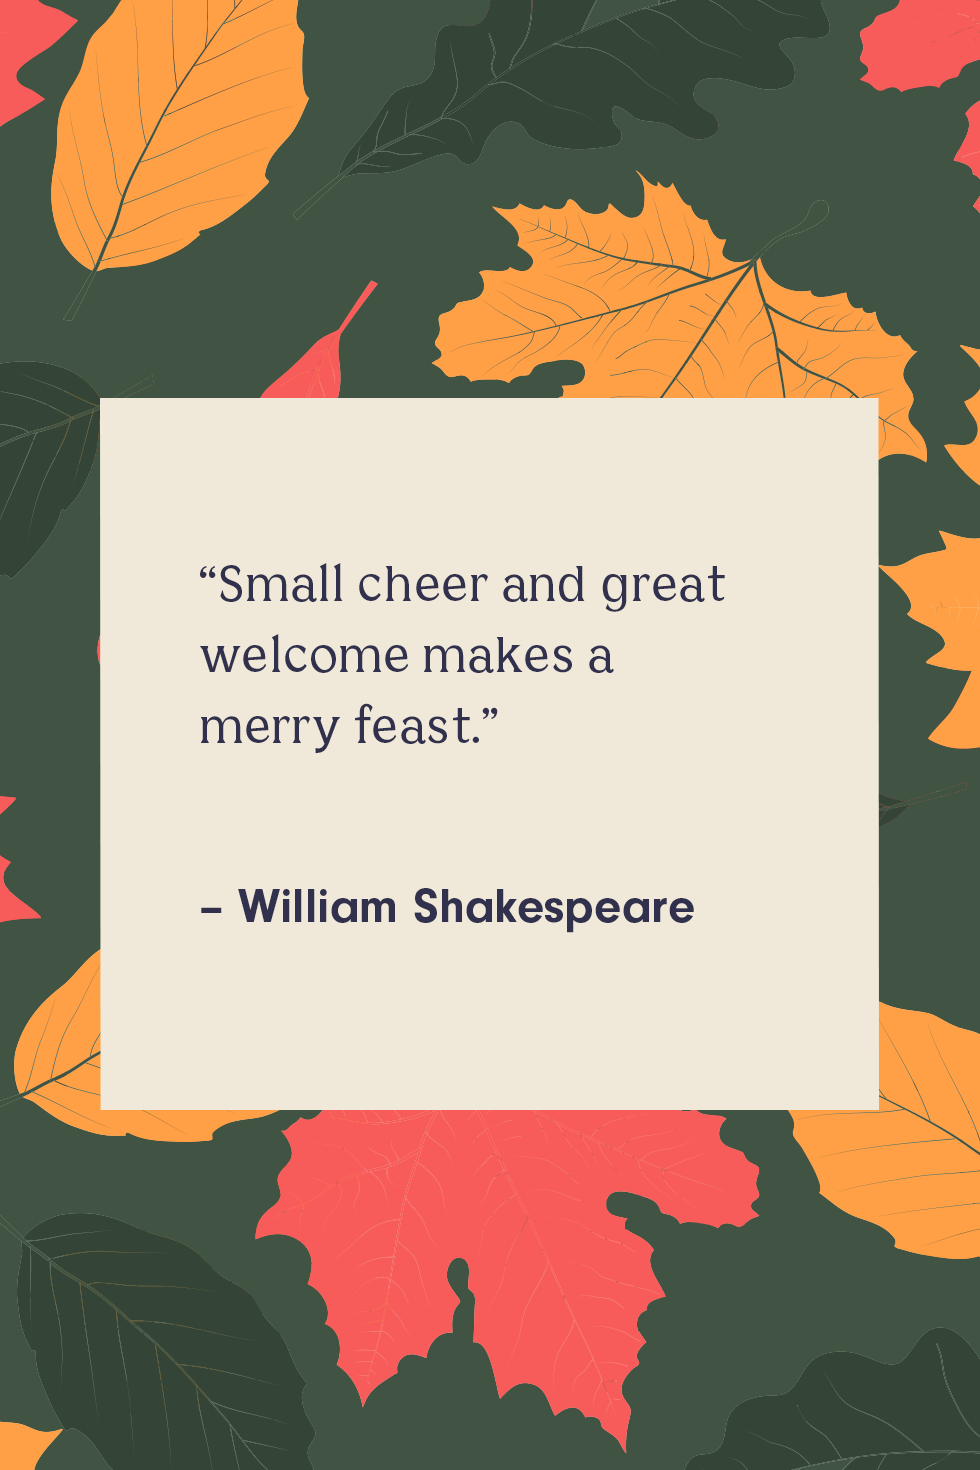 42 Uplifting Thanksgiving Quotes To Share With The Whole Dinner Table Thanksgiving Quotes Thankful Quotes Instagram Captions